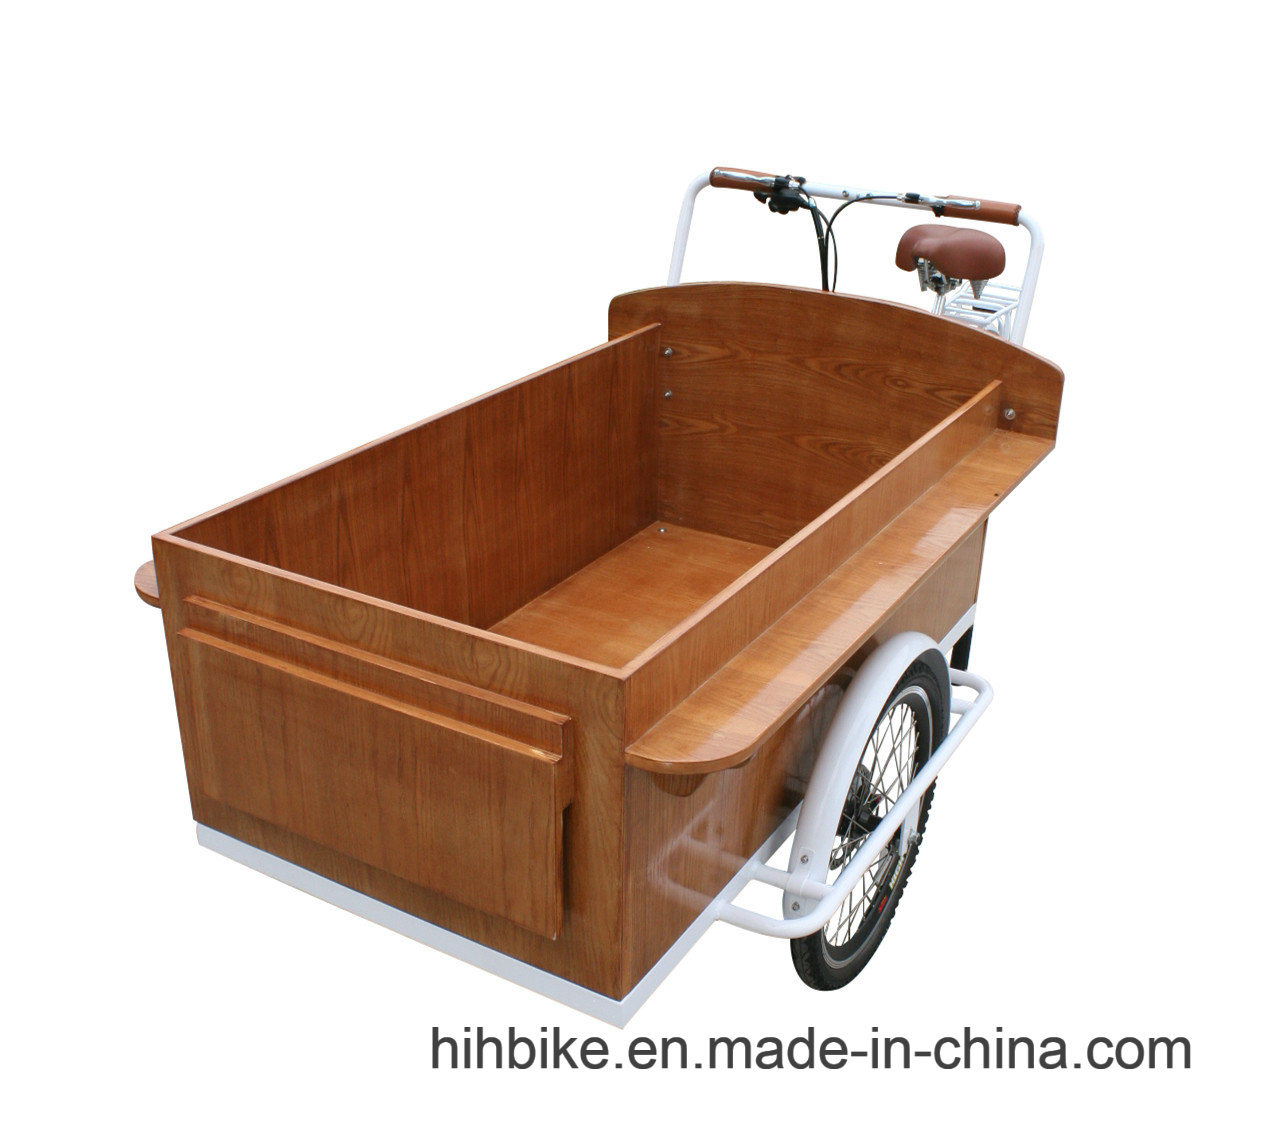 Economic Cart Trike for Carrying Stuff